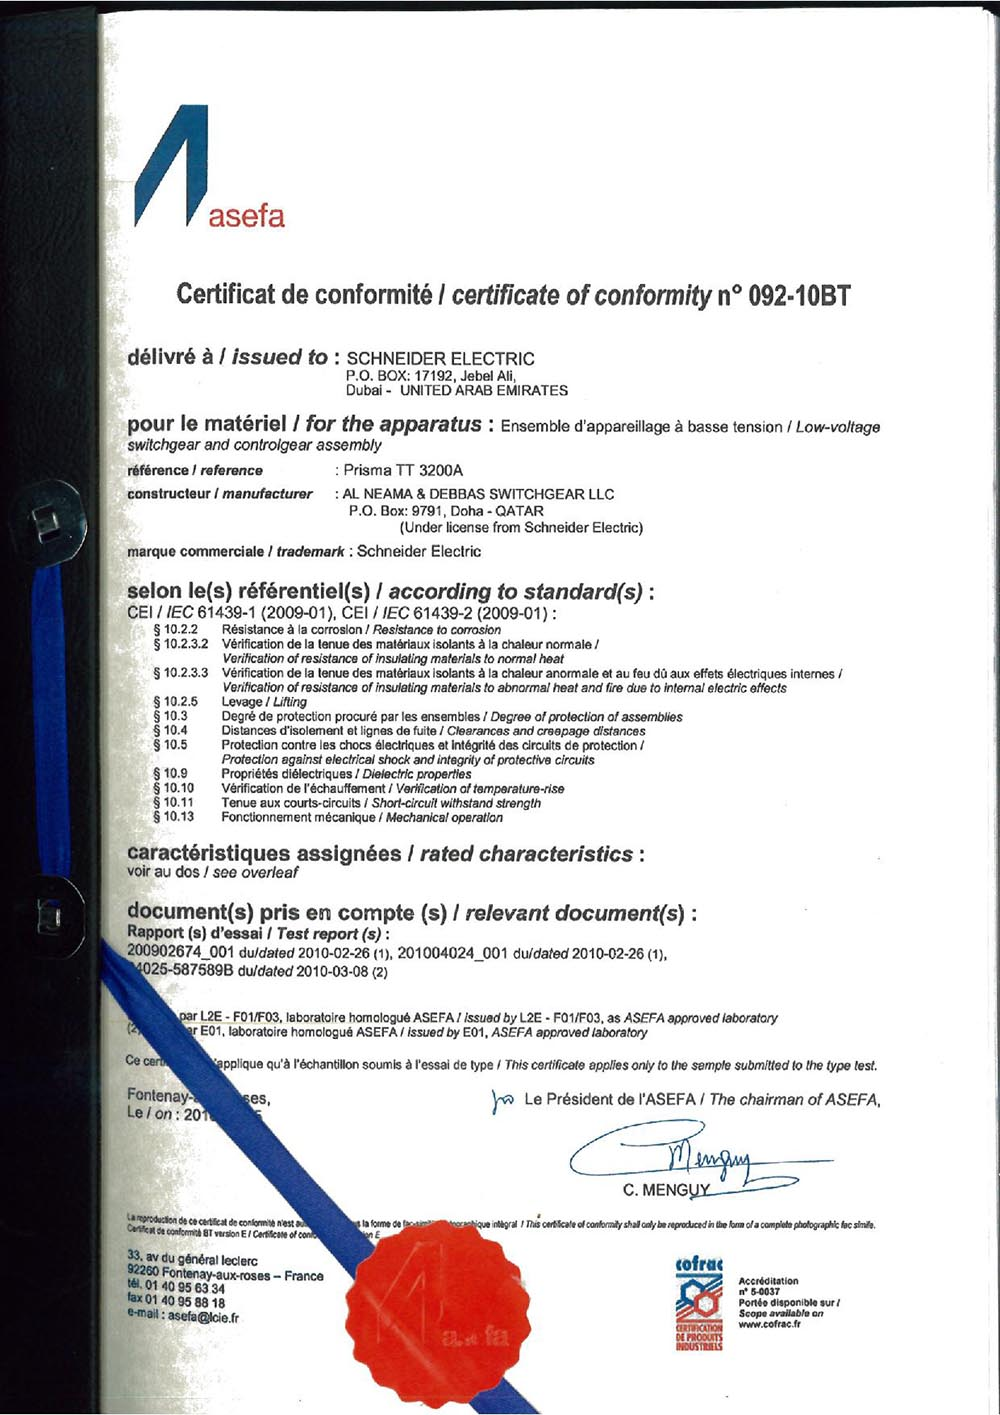 3200A rated Asefa Type test certificate